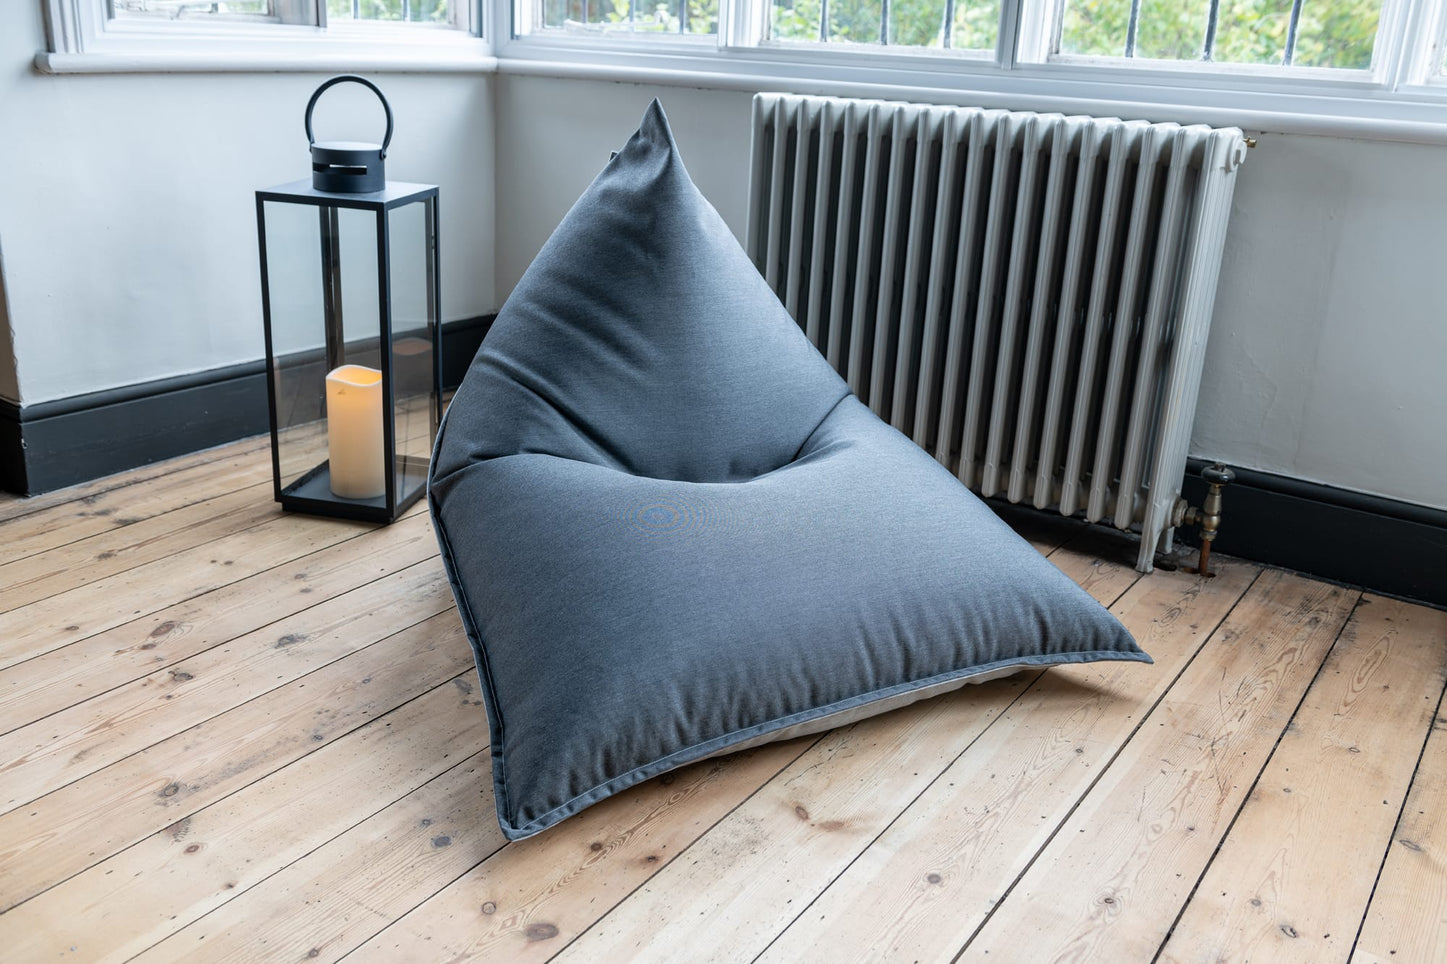 Adult Bean Bag Chair in Indigo and Ice Blue